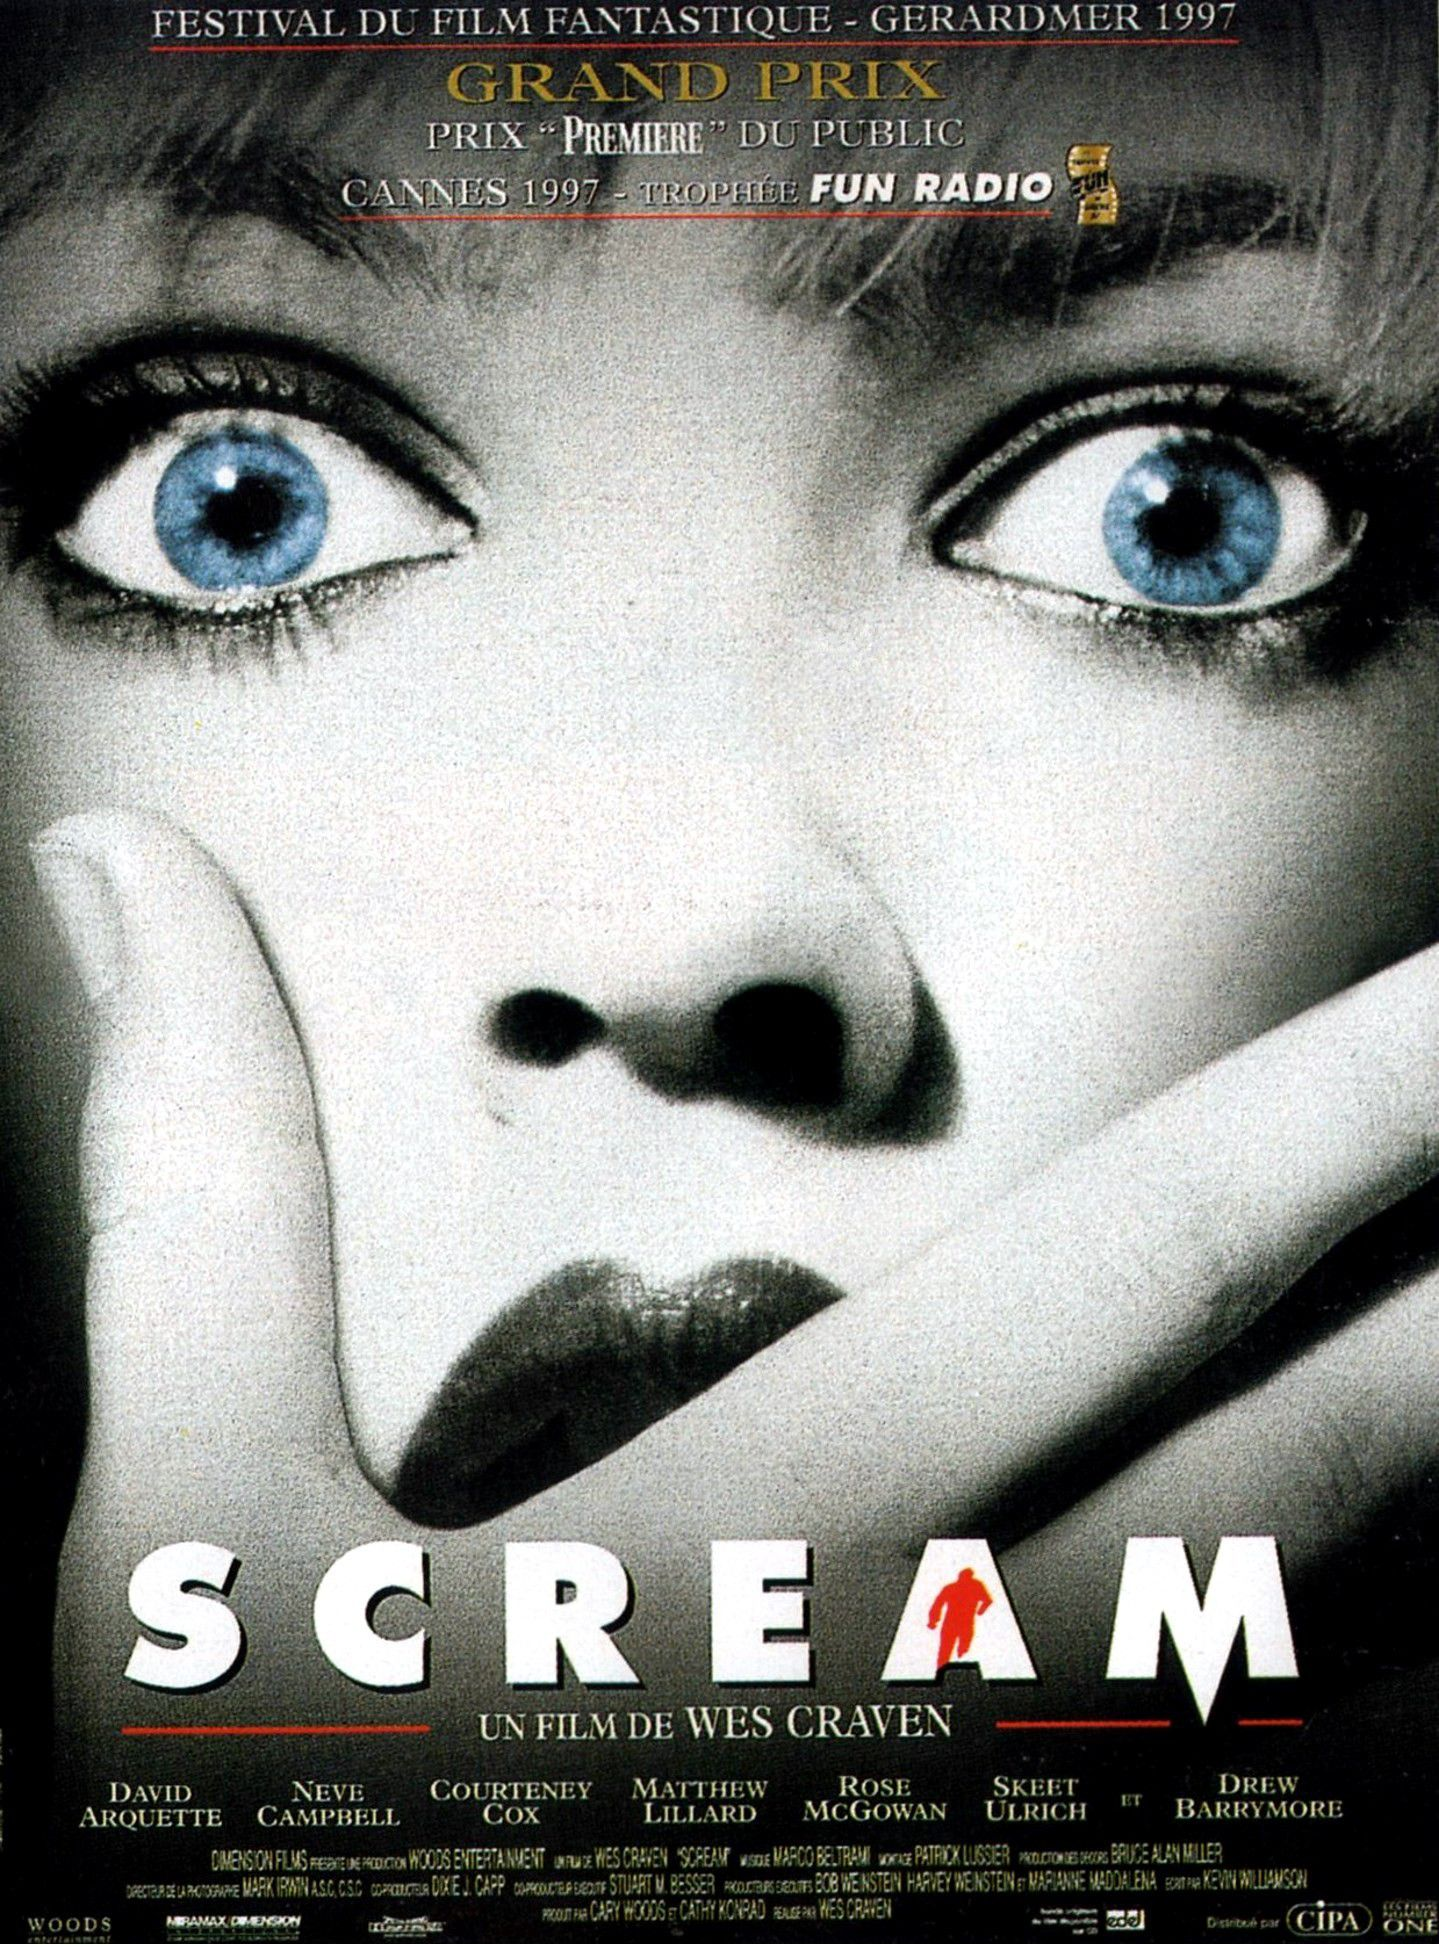 Affiche poster scream disney dimension